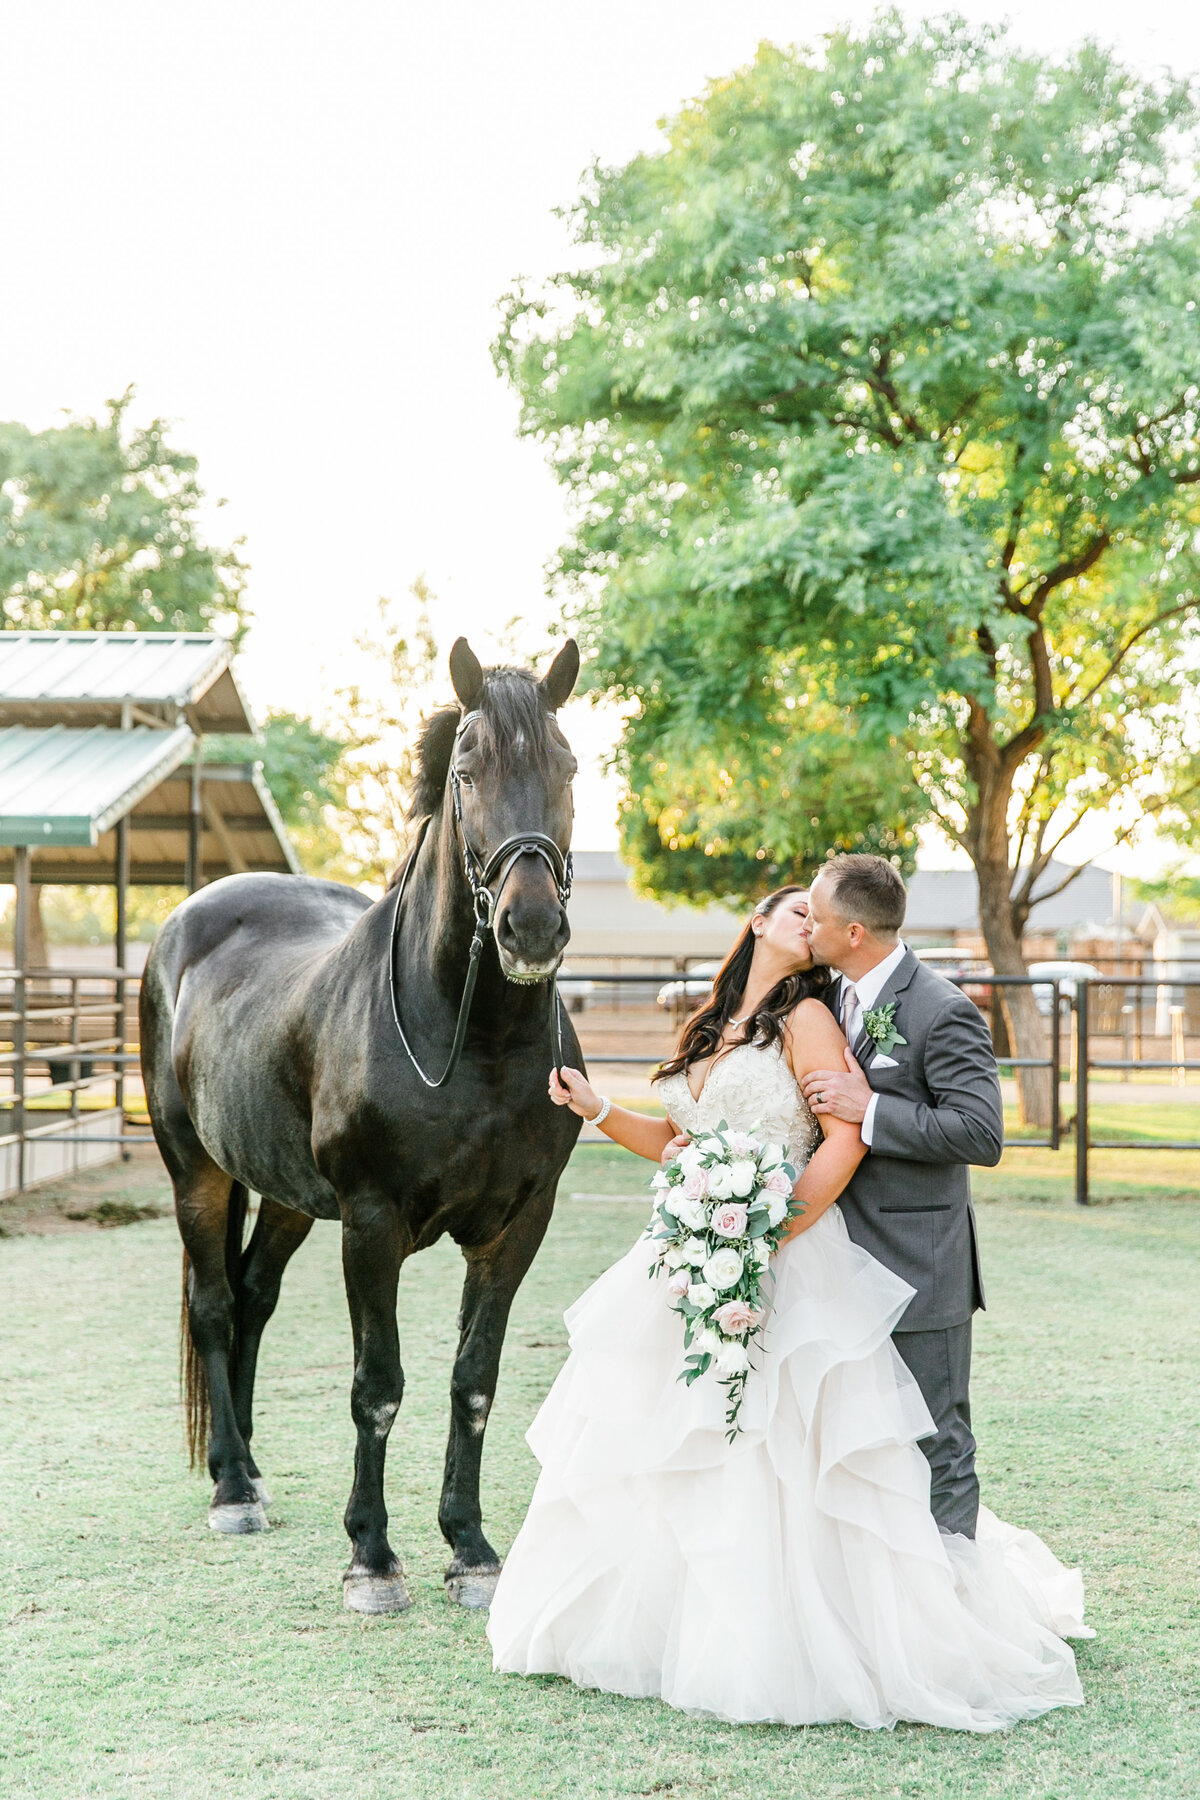 Karlie Colleen Photography - Glendale Arizona Backyard ranch wedding - Meghan & Ken-488